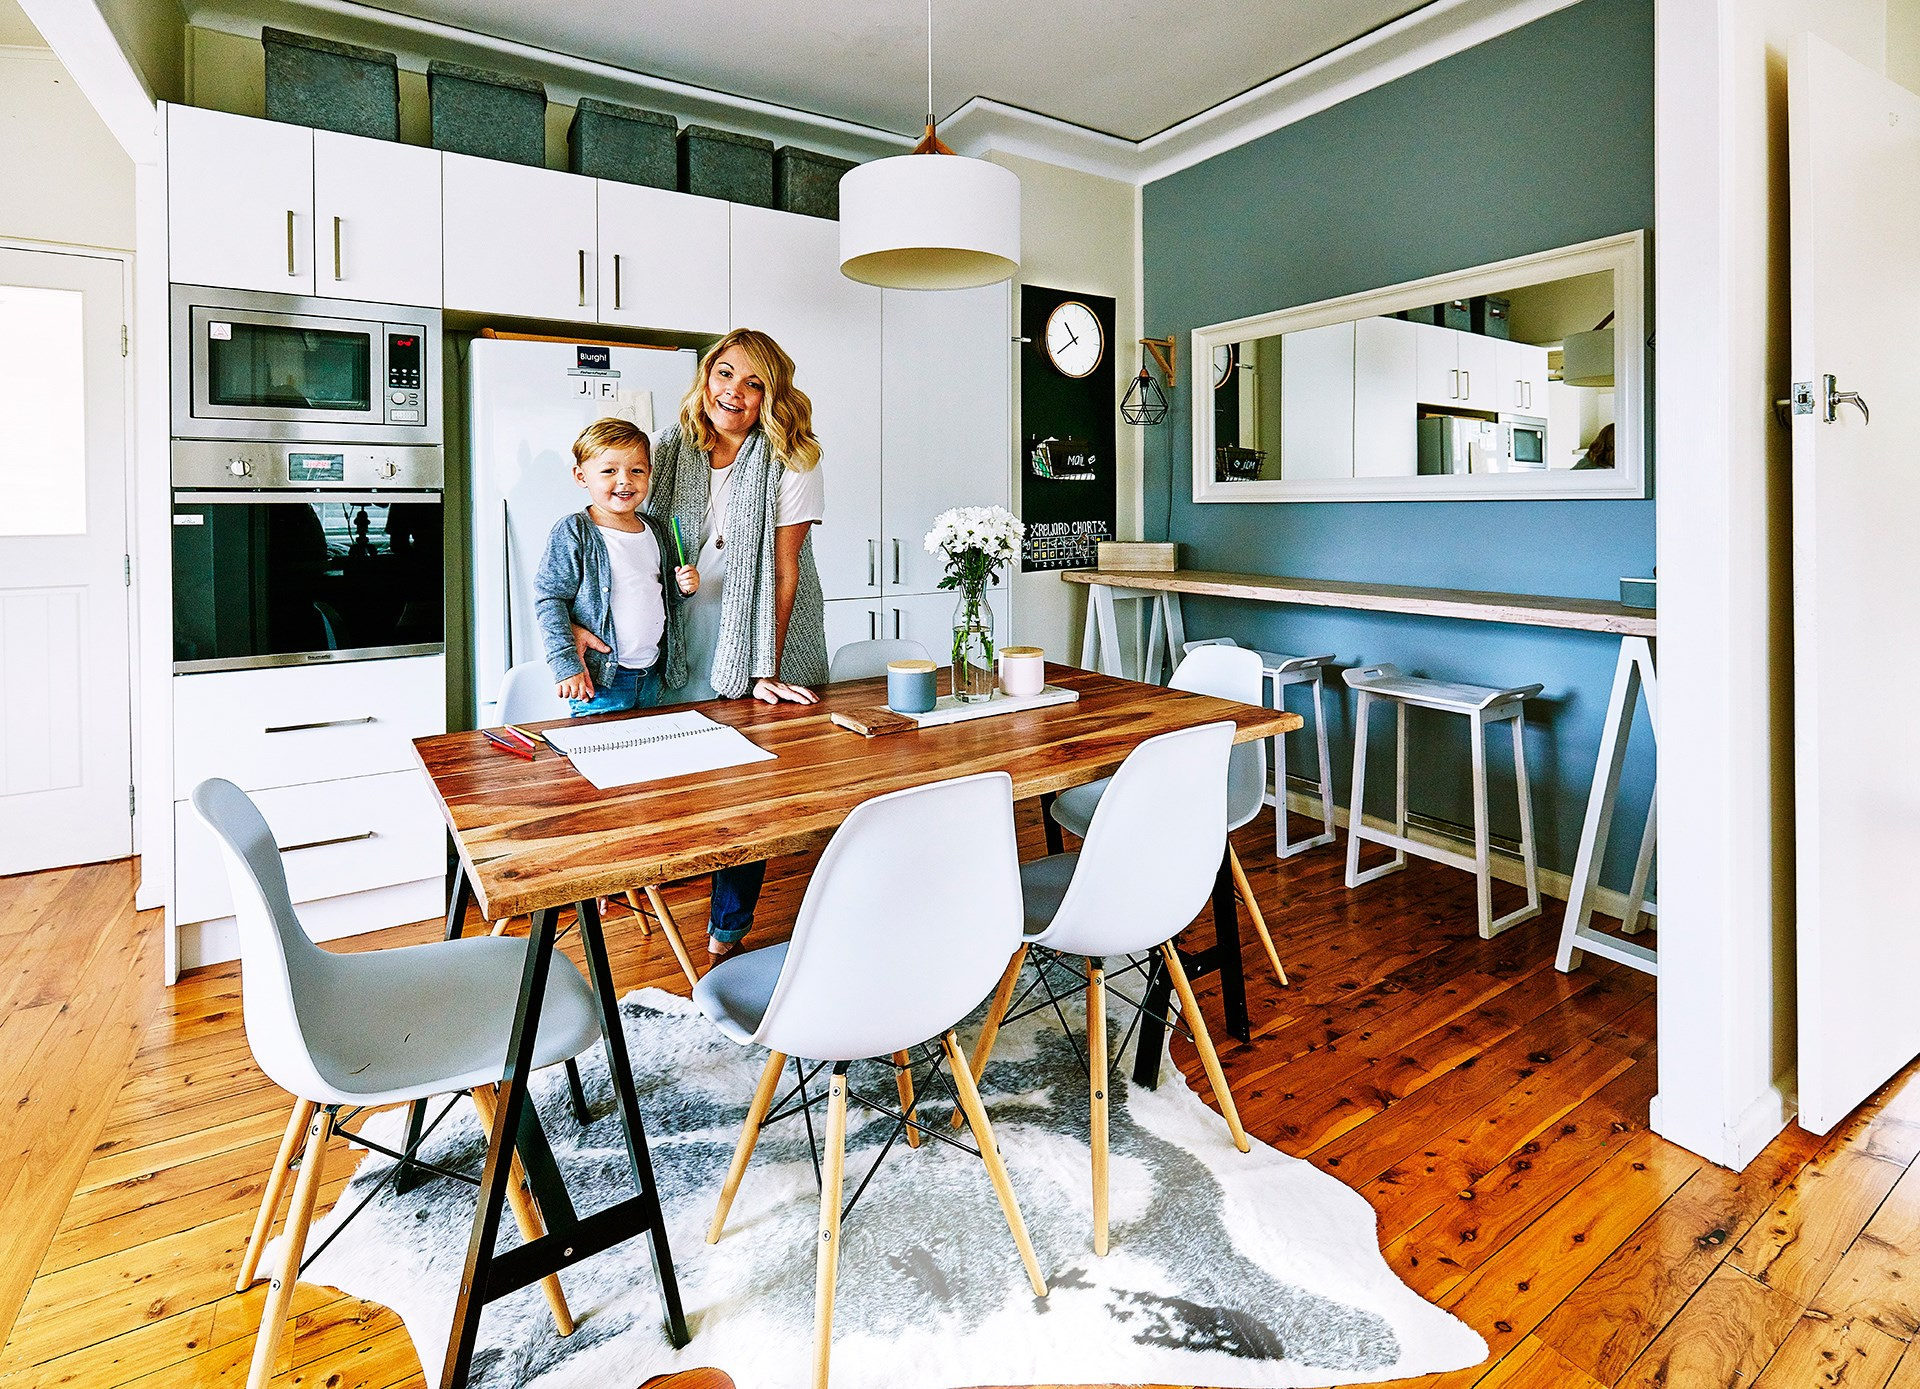 **Jess Walsham** Since moving into this fibro cottage in south-west Sydney, this couple have been making adjustments here and there to create the perfect family home. [See the full home here](http://www.homestolove.com.au/inspiring-fibro-cottage-renovation-3659) or [vote for this home](http://www.homestolove.com.au/homes-reader-home-of-the-year-4499).